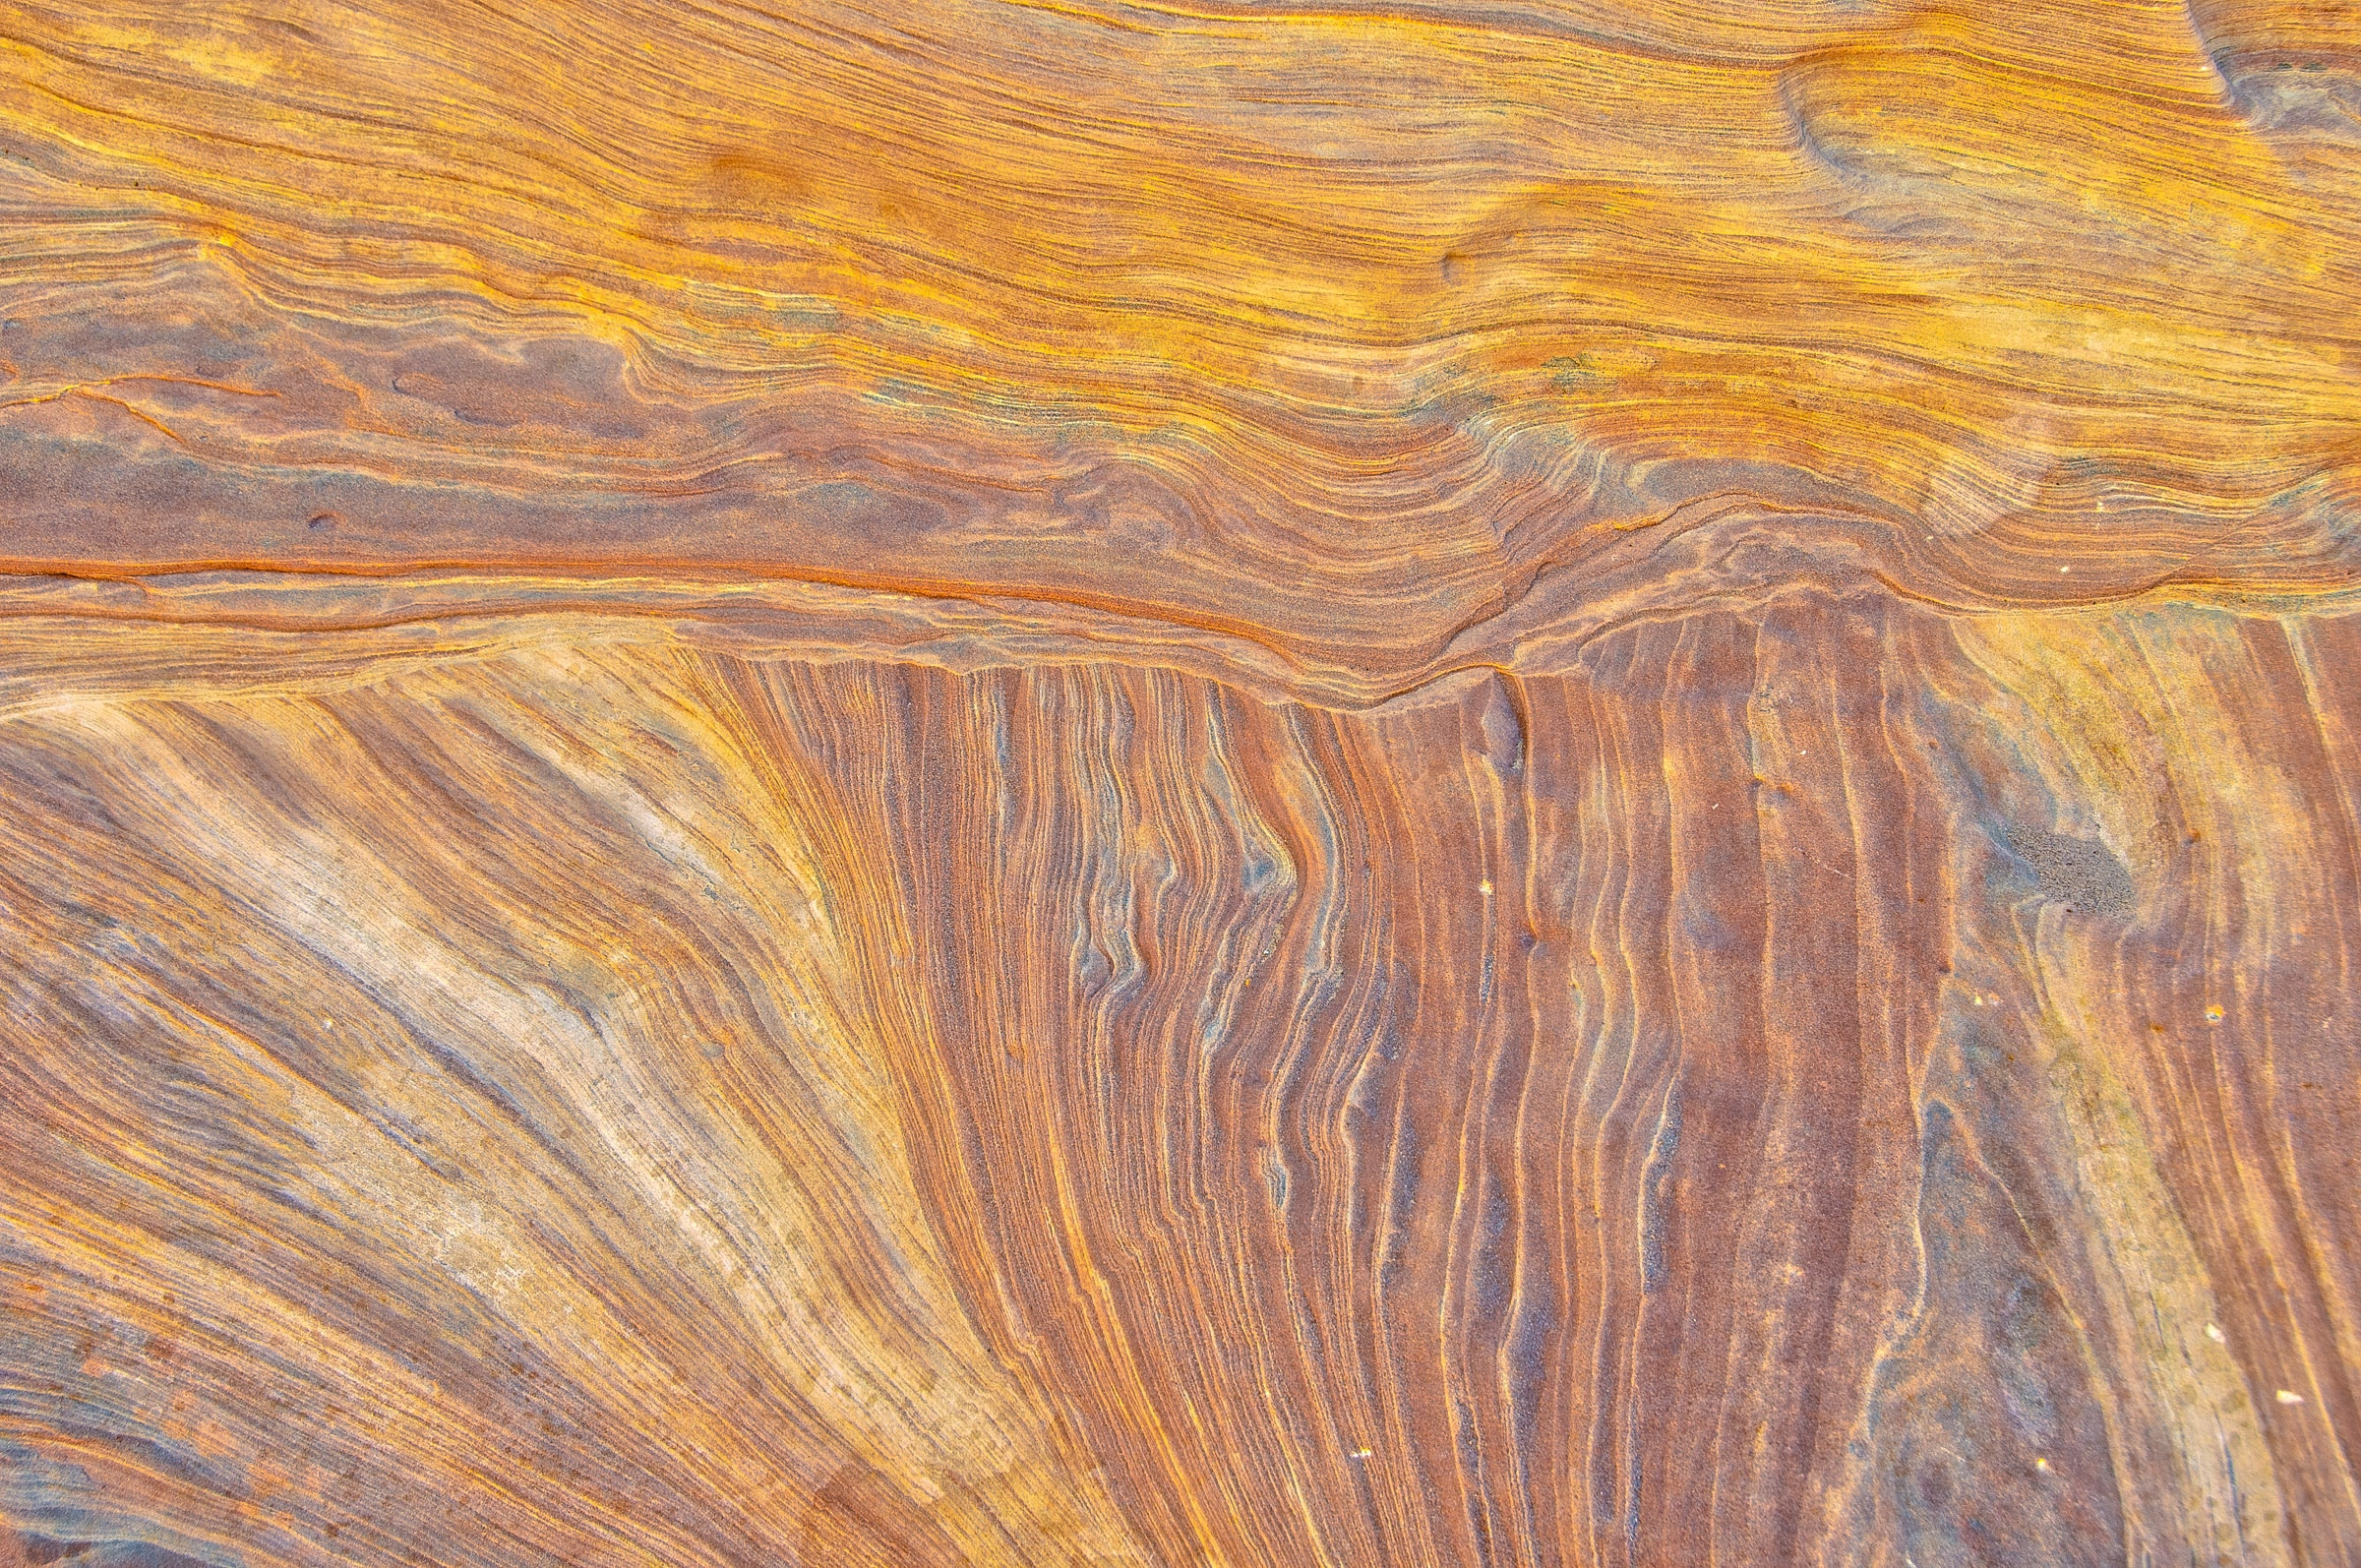 This detail of the wall of Bell Canyon off Wild Horse Road, near Goblin Valley State Park, Utah, looks like wood grain.